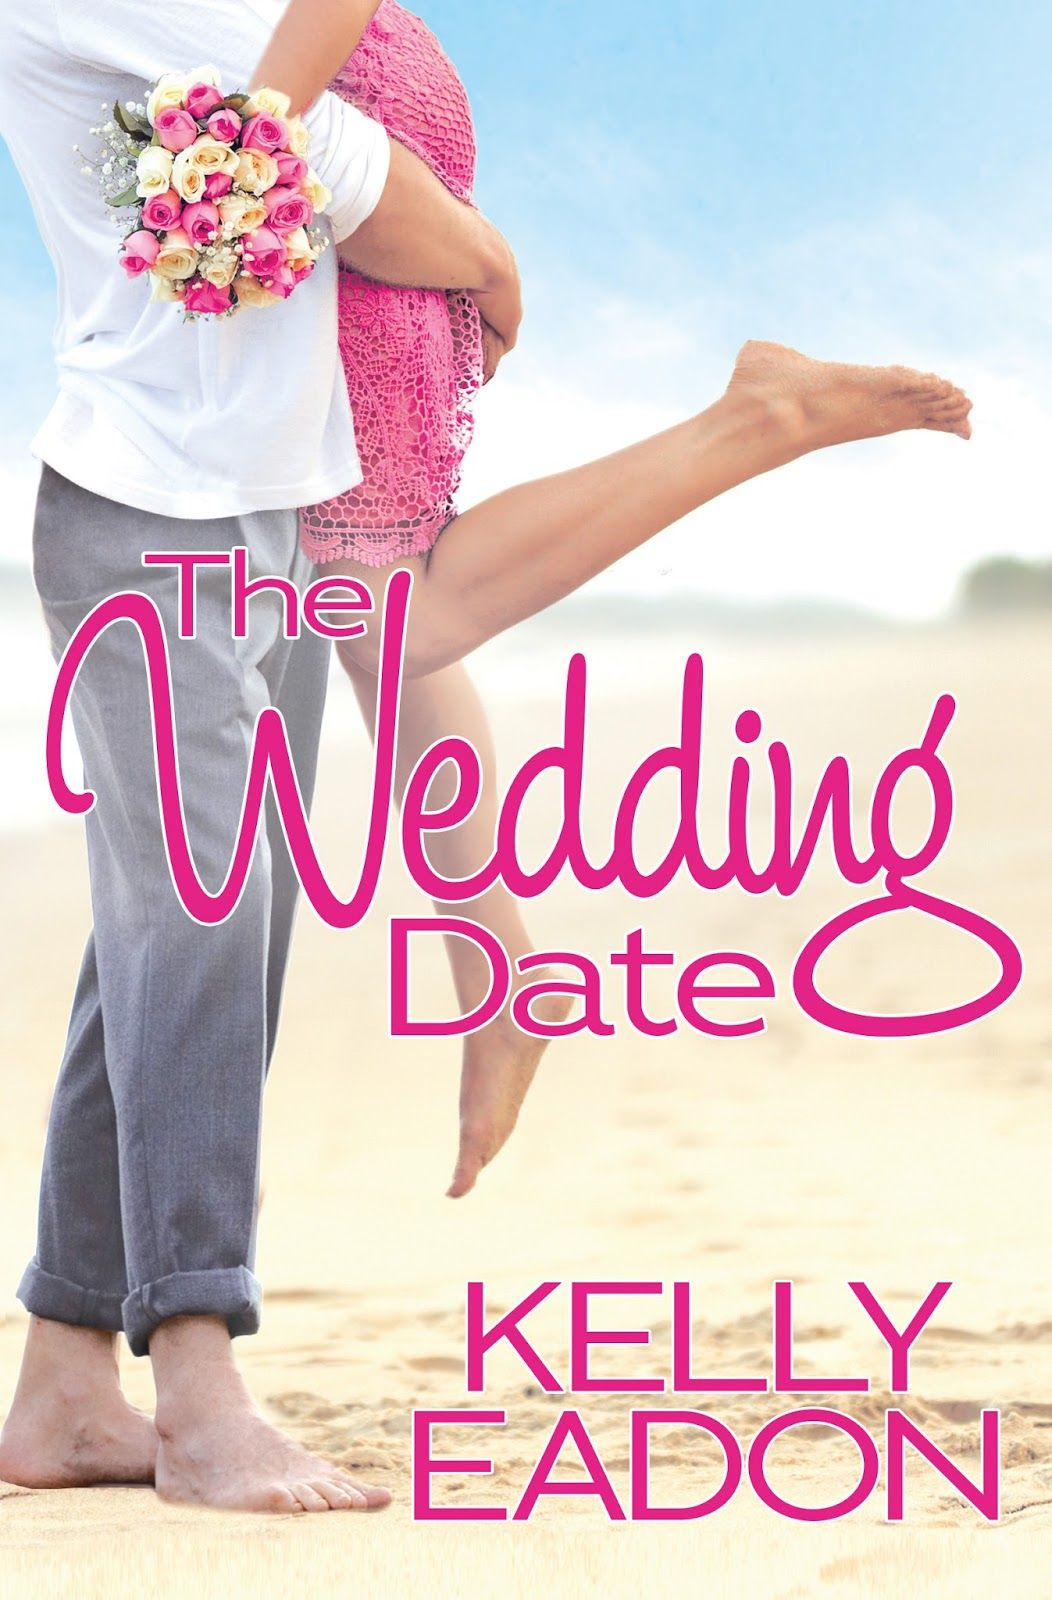 Release Day The Wedding Date by Kelly Eadon The wedding